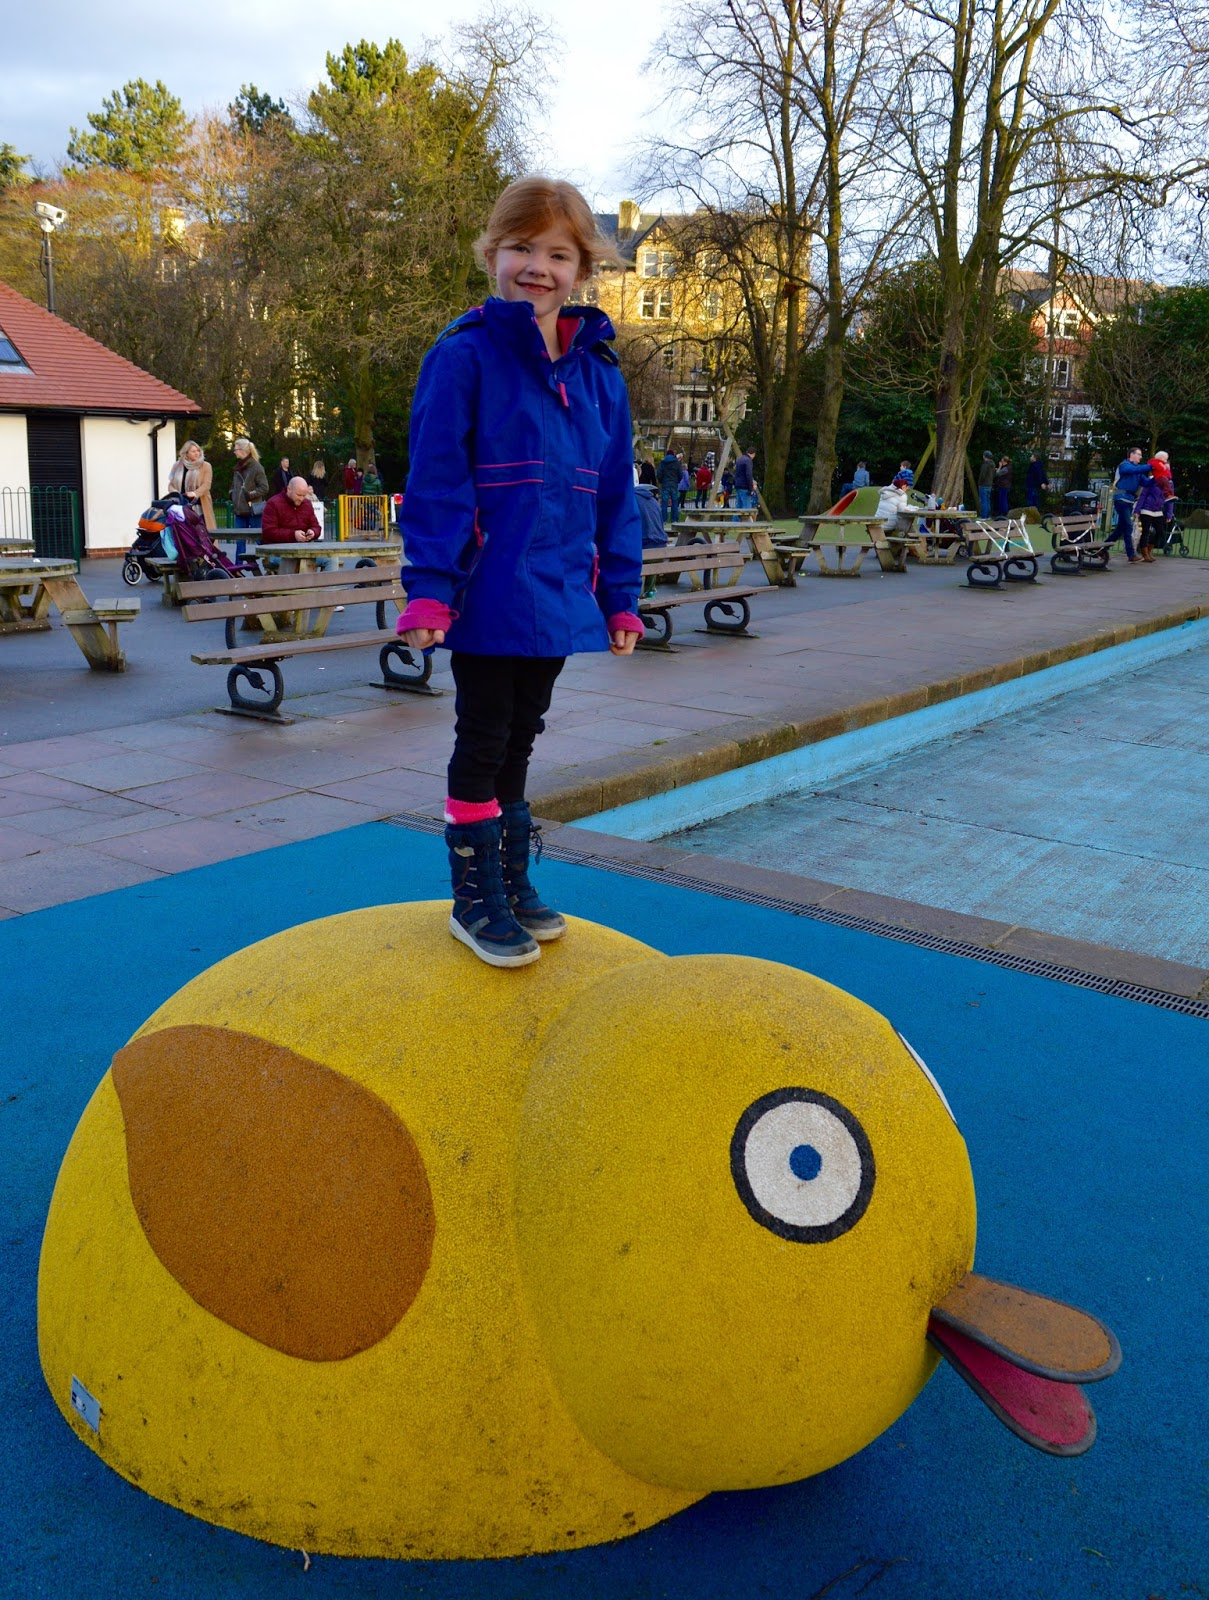 What to do in Valley Gardens, Harrogate | Play area, Pitch & Putt, events & more - Heidi on duck